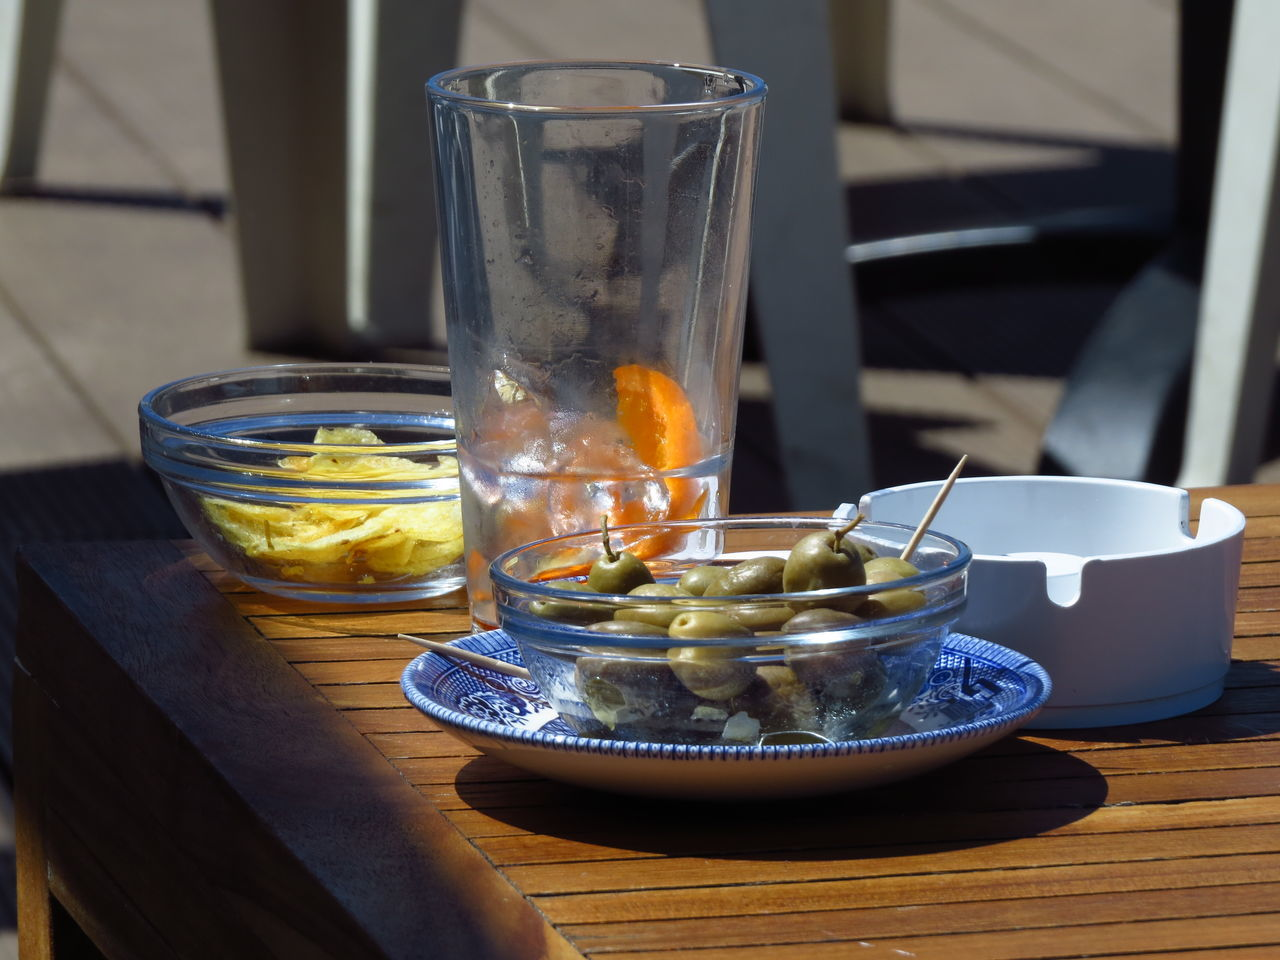 Alcohol Cagliari Cagliari Urban City Chips Close-up Crips Dolce Vita Drink Drinking Glass Eating Out Food Food And Drink Healthy Eating Italian Lifestyle Italy La Dolce Vita Lifestyles Lounge Olives Orange Slice Refreshment Set Table Still Life Table The Table Is Set